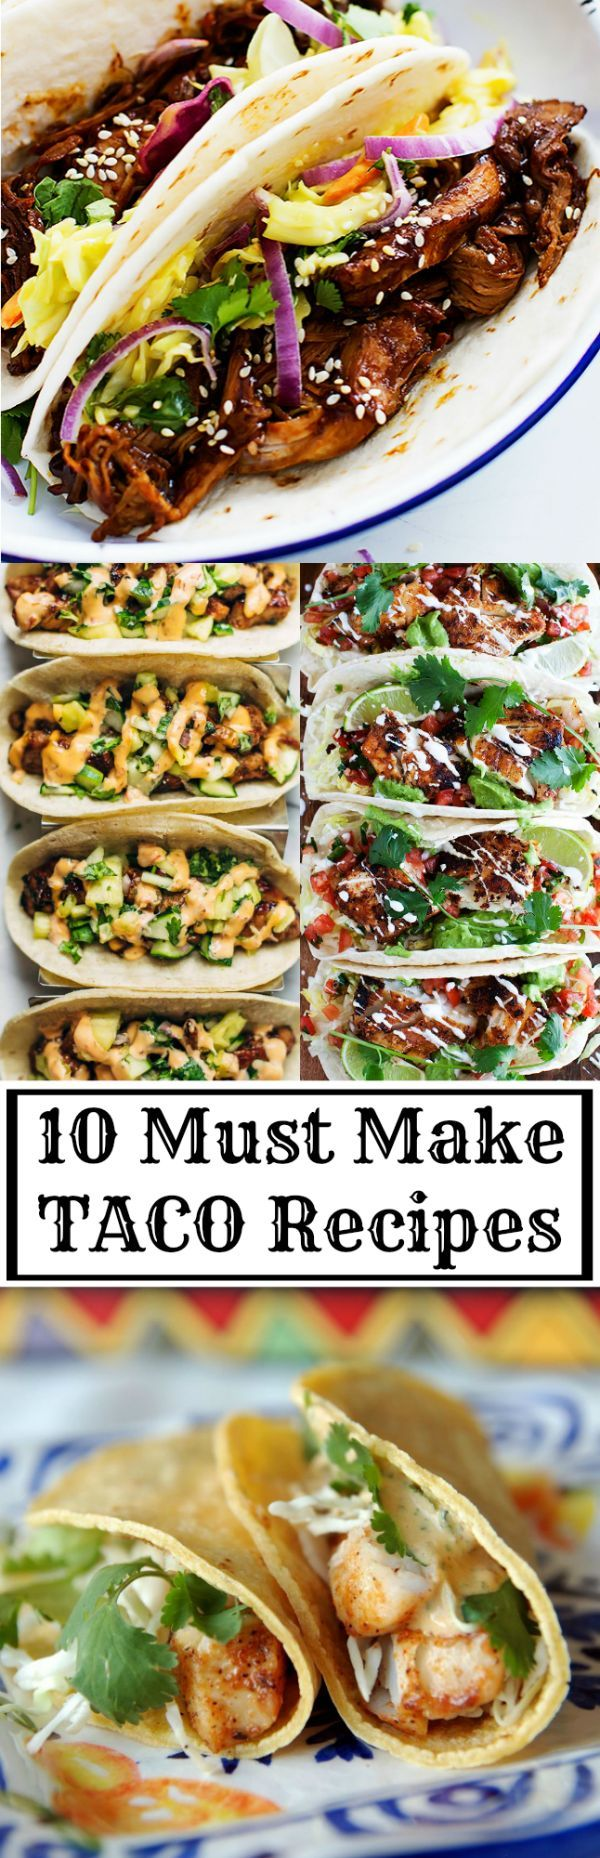 10 Must Make Taco Recipes. Looking for Taco Tuesday!